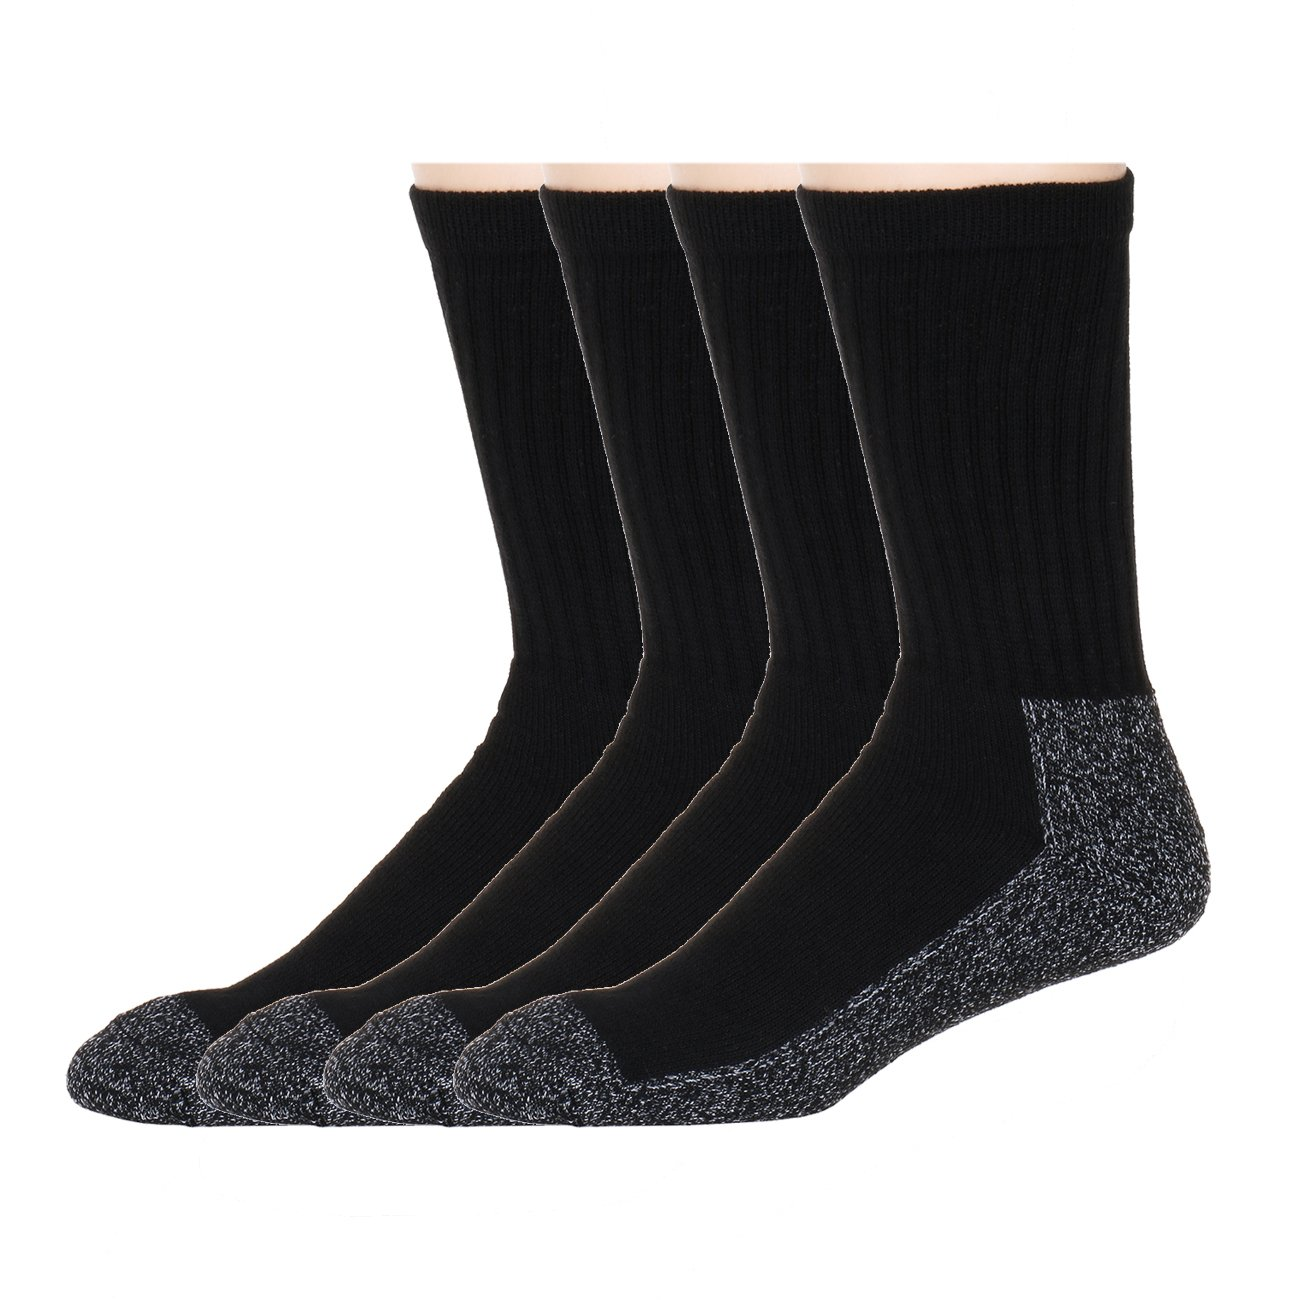 Heavy Duty Black Reinforced Crew - American Sport Men's Socks 4 pair pack NC-855